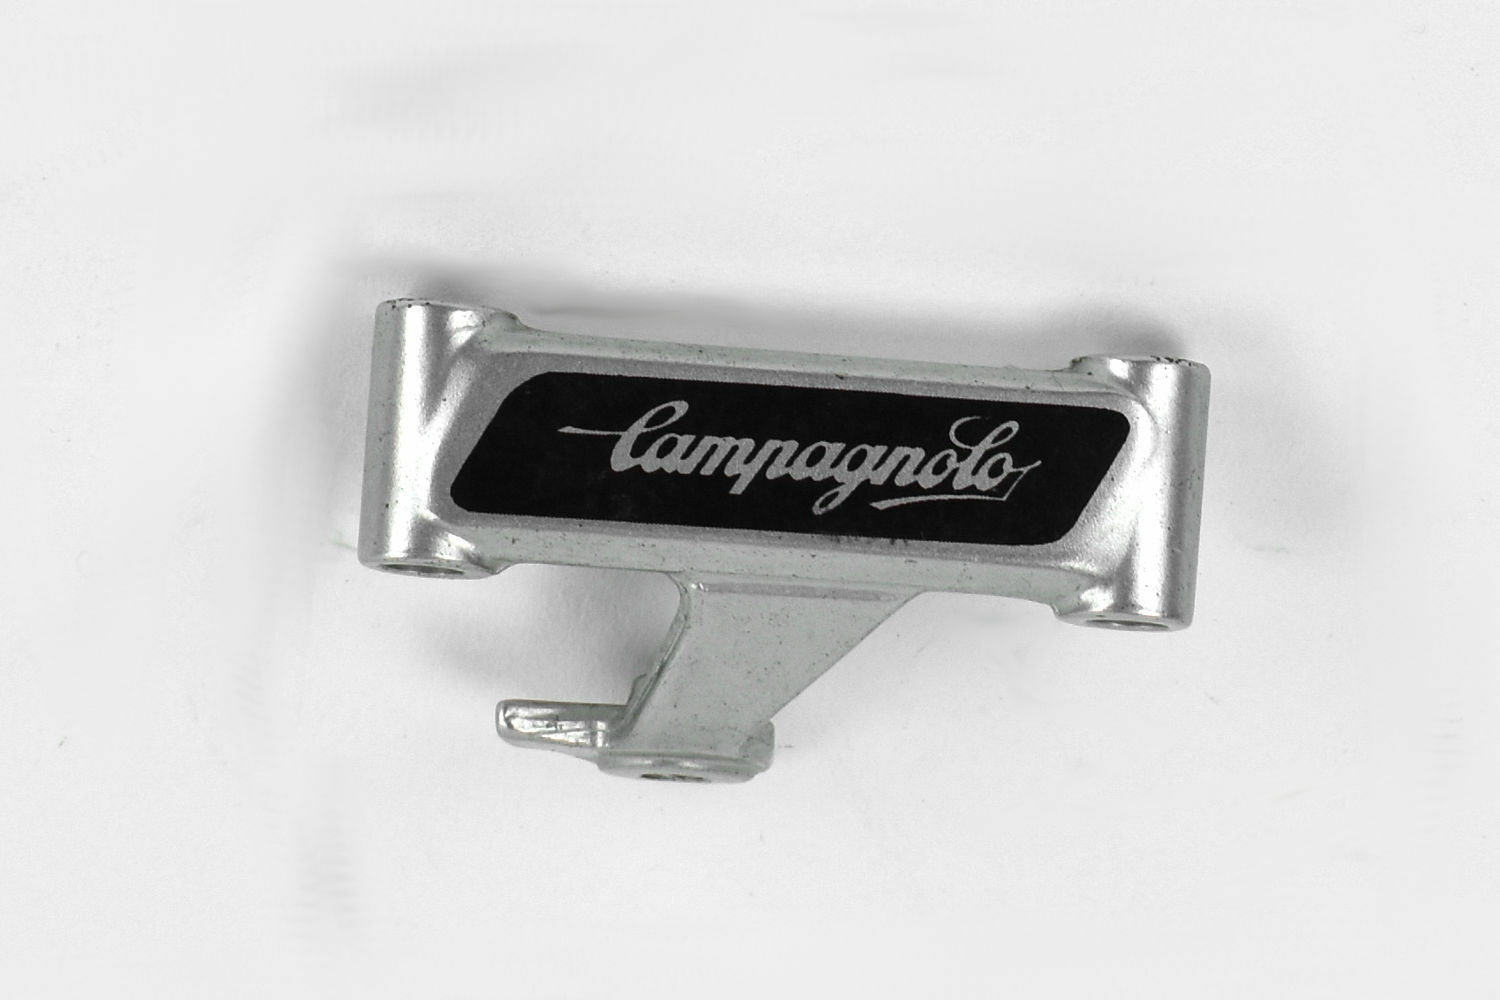 Campagnolo Super Record 2nd generation front face spare part - 1980s vintage